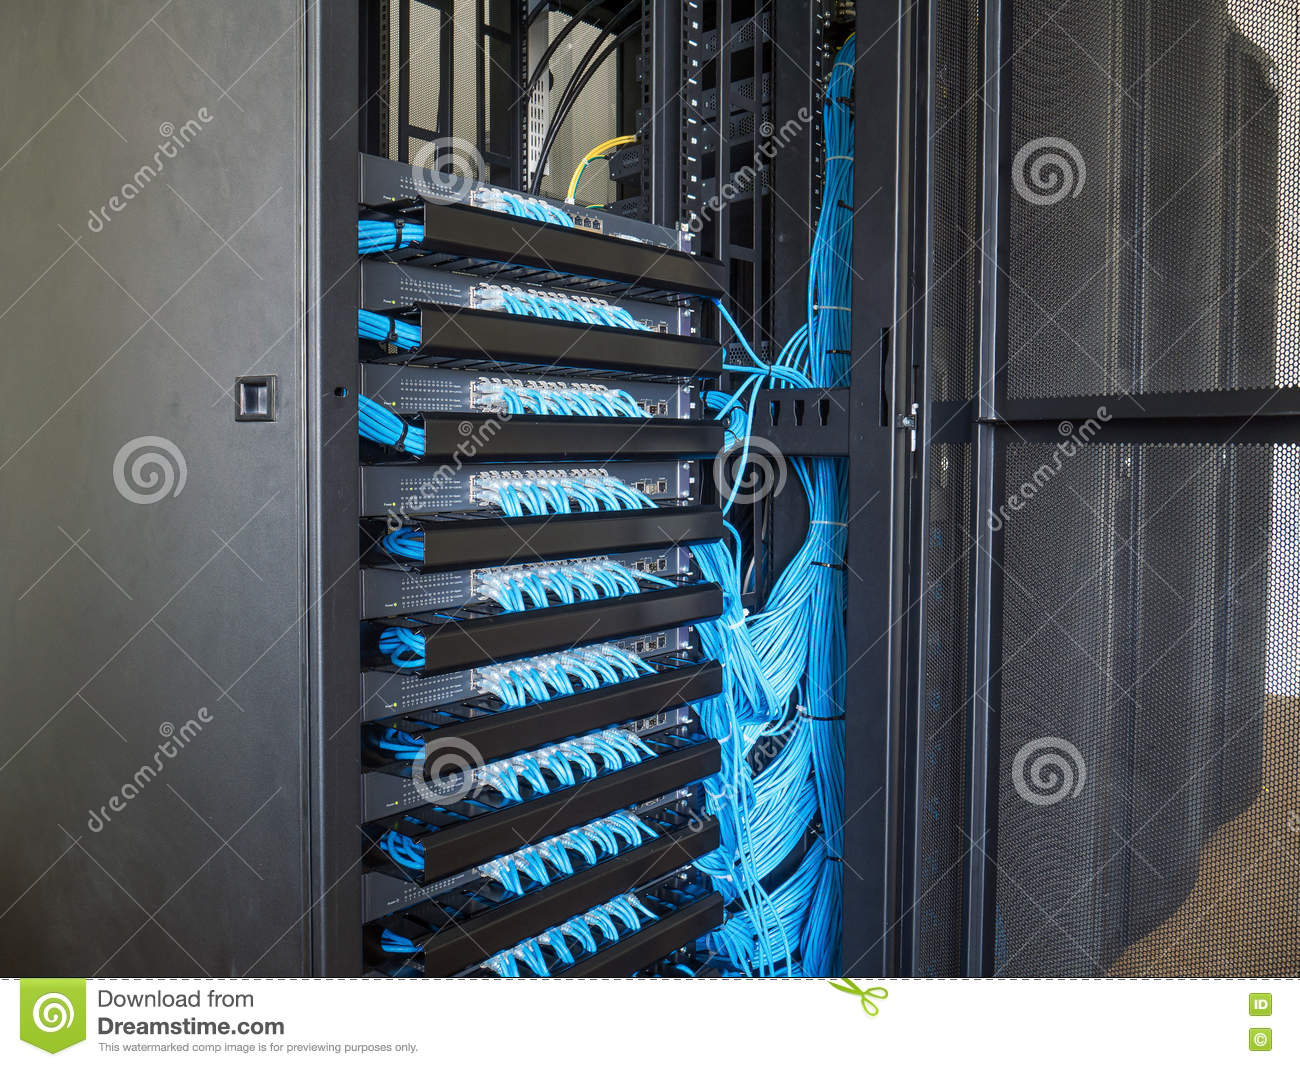 Network Switch In Rack Cabinet Stock Photo Image 75027723